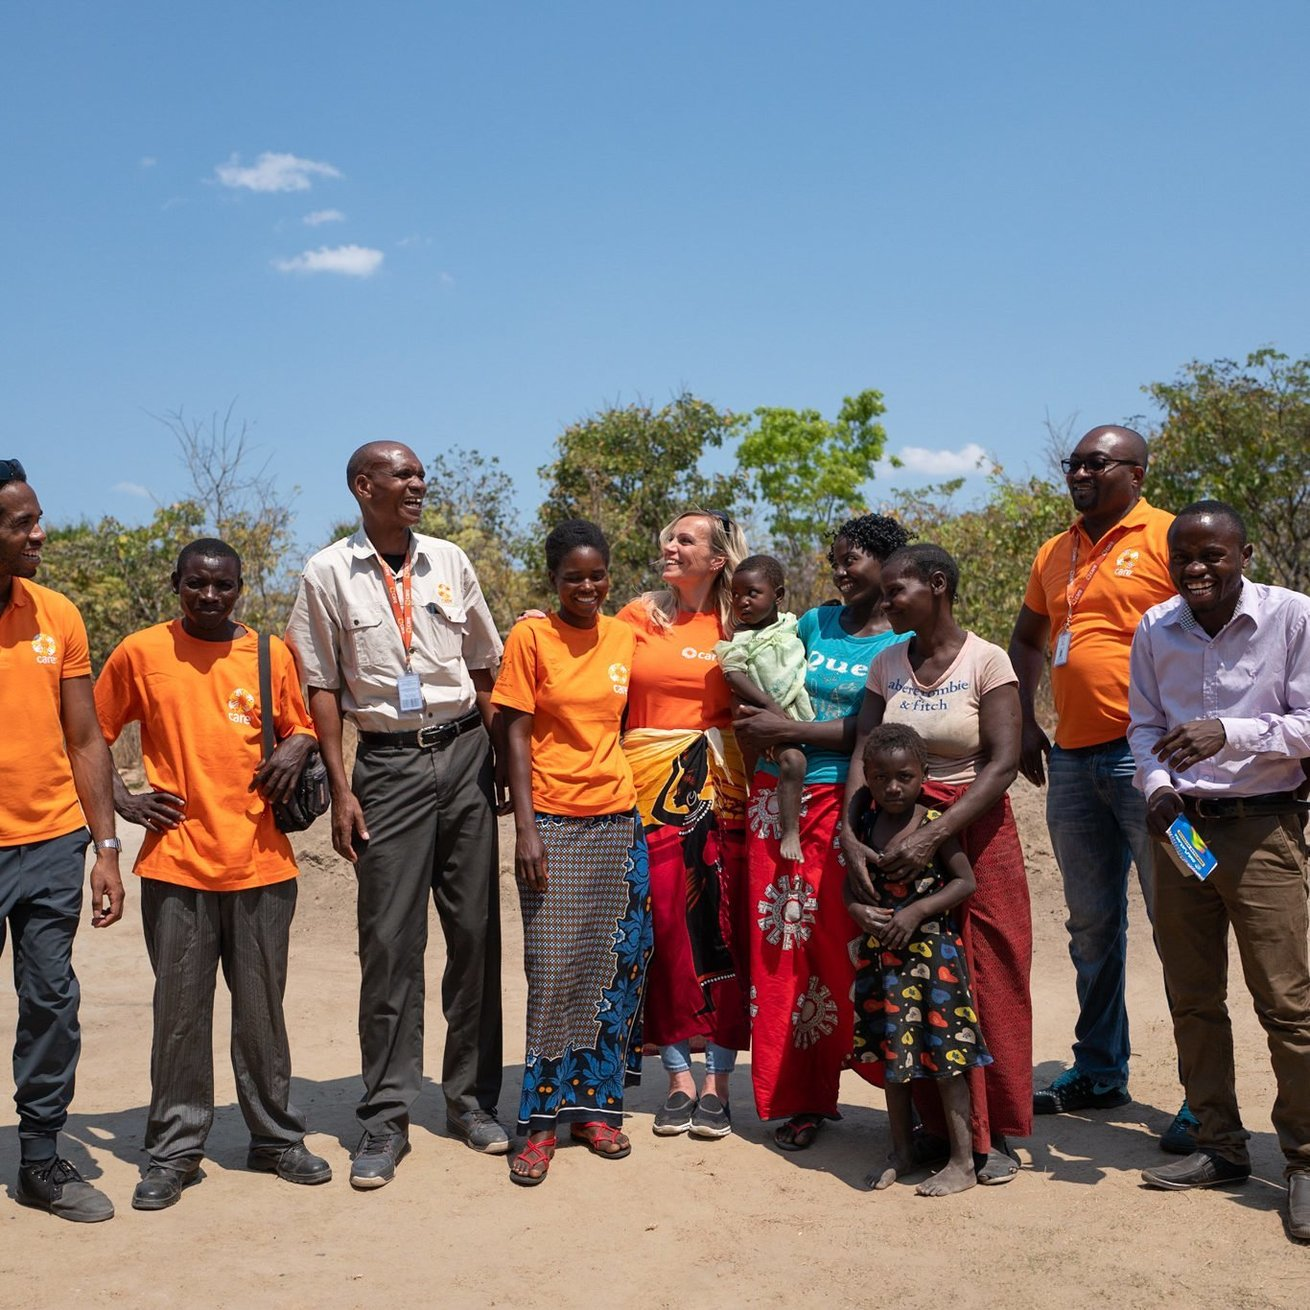 """<ul>  <li><span style=""""font-size:11pt"""">From September 20 to October, 15, 2018, the CARE Canada Knowledge Translation &amp; Public Engagement Officer (Tanja Kisslinger) traveled with two external, videographer consultants to Malawi, Mozambique and Zambia (the three SANI project countries). This was the first (of three, planned) resource allocation trips to support the SANI public engagement campaign (i.e. Feed Her Future). The Feed Her Future campaign is running in Canada from June 2018 to September 2020 (see: www.feedherfuture.ca). The overall goal of this trip was to collect a first round of (baseline) videographic and photographic footage showing the SANI project on the ground in all three countries. The videographers will spin the footage they collect into various deliverables that will be part of the public engagement campaign in Canada. </span></li>  <li><span style=""""font-size:11pt"""">In each country, the goals were to:</span>  <ul style=""""list-style-type:circle"""">  <li><span style=""""font-size:11pt"""">Collect key, inaugural footage, both video and photographic, which can be used in Year 1 of the campaign to show SANI in practice;</span></li>  <li><span style=""""font-size:11pt"""">Collect human-interest stories, quotes, photos and video which demonstrate SANI project activities and progress to date.</span></li>  </ul>  </li>  <li><span style=""""font-size:11pt"""">This specific set of photos was collected during 4 days of field visits in Zambia. Specifically, the photos show:</span>  <ul style=""""list-style-type:circle"""">  <li><span style=""""font-size:11pt"""">We visited Kanchibiya District, Mnikashi village. There we did a walking tour to see agricultural and WASH interventions put in place by SANI. That included, a local water hole (dirty, small) which had been used (and is still used by some households) but is being replaced by wells and boreholes. We ran into a local woman doing her laundry and dishes there. We also visited the backyard gardens supported by SANI and the community dem"""